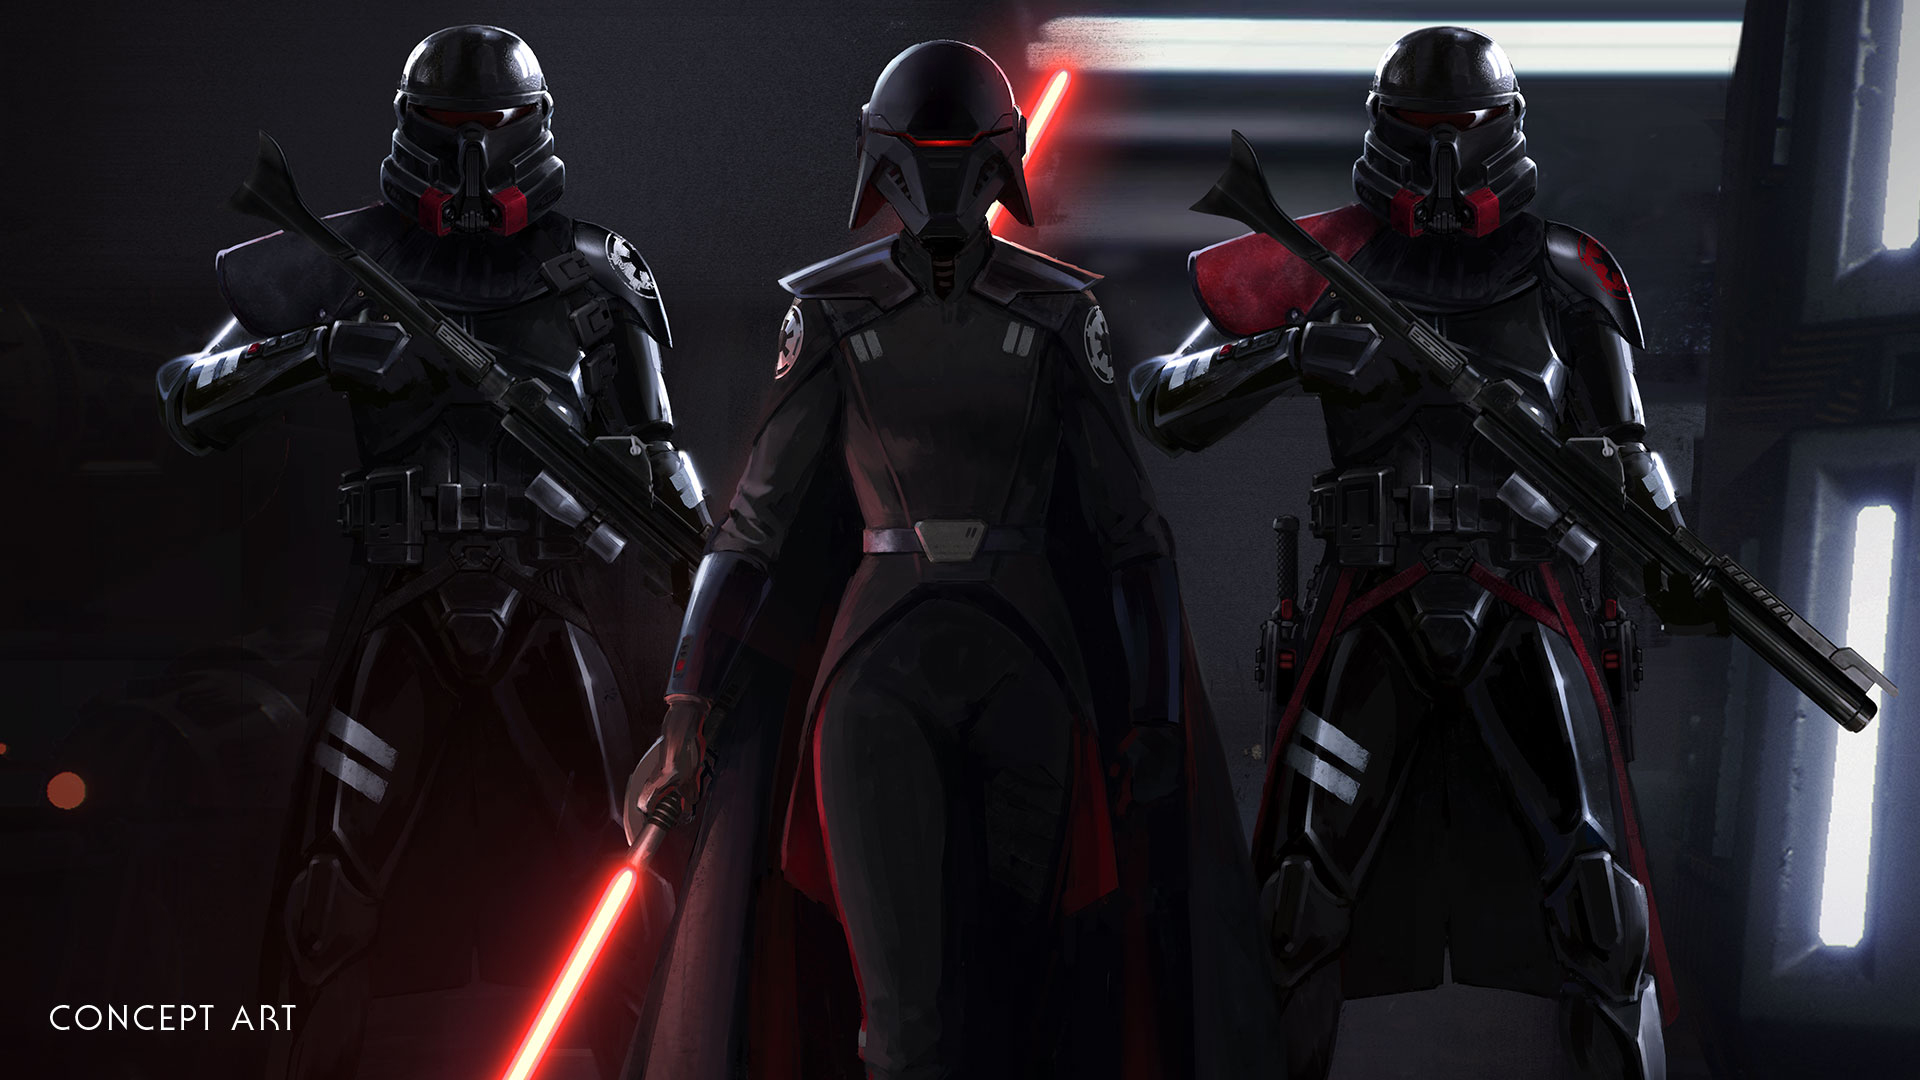 To be one of the best Star Wars games, Jedi: Fallen Order should avoid Vader and other obvious series staples